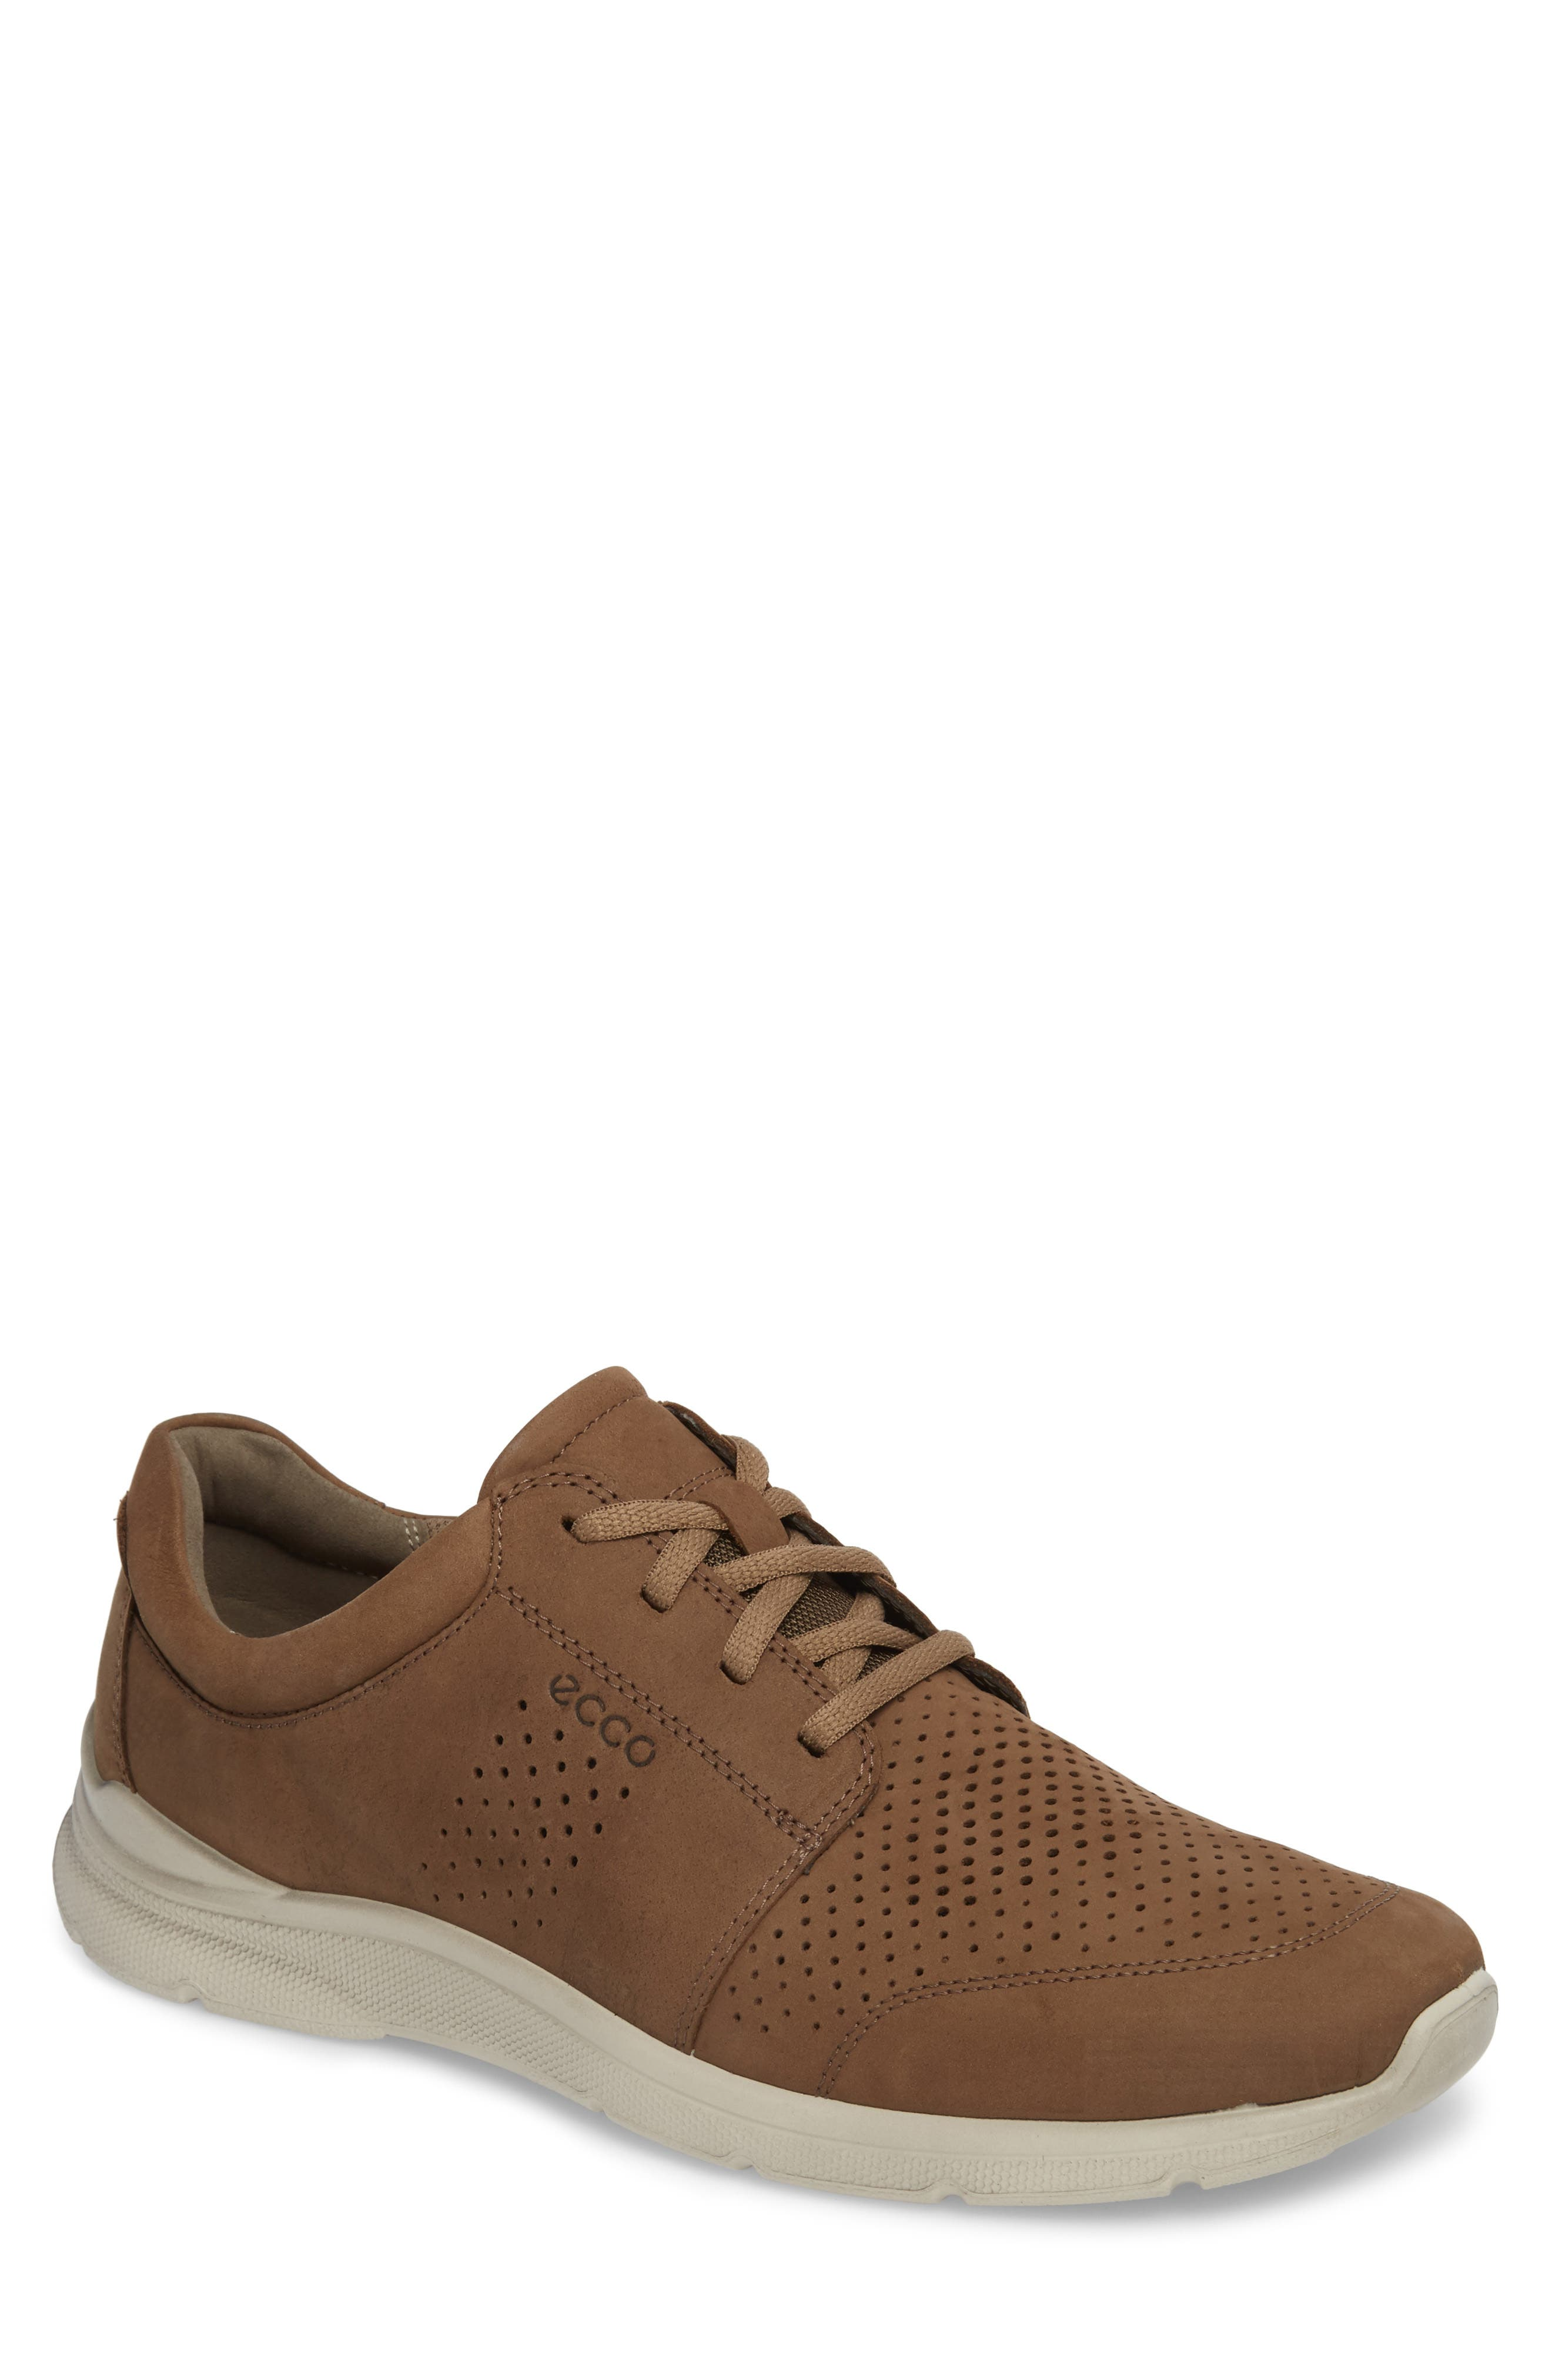 Irving Lace-Up Sneaker,                             Main thumbnail 1, color,                             209